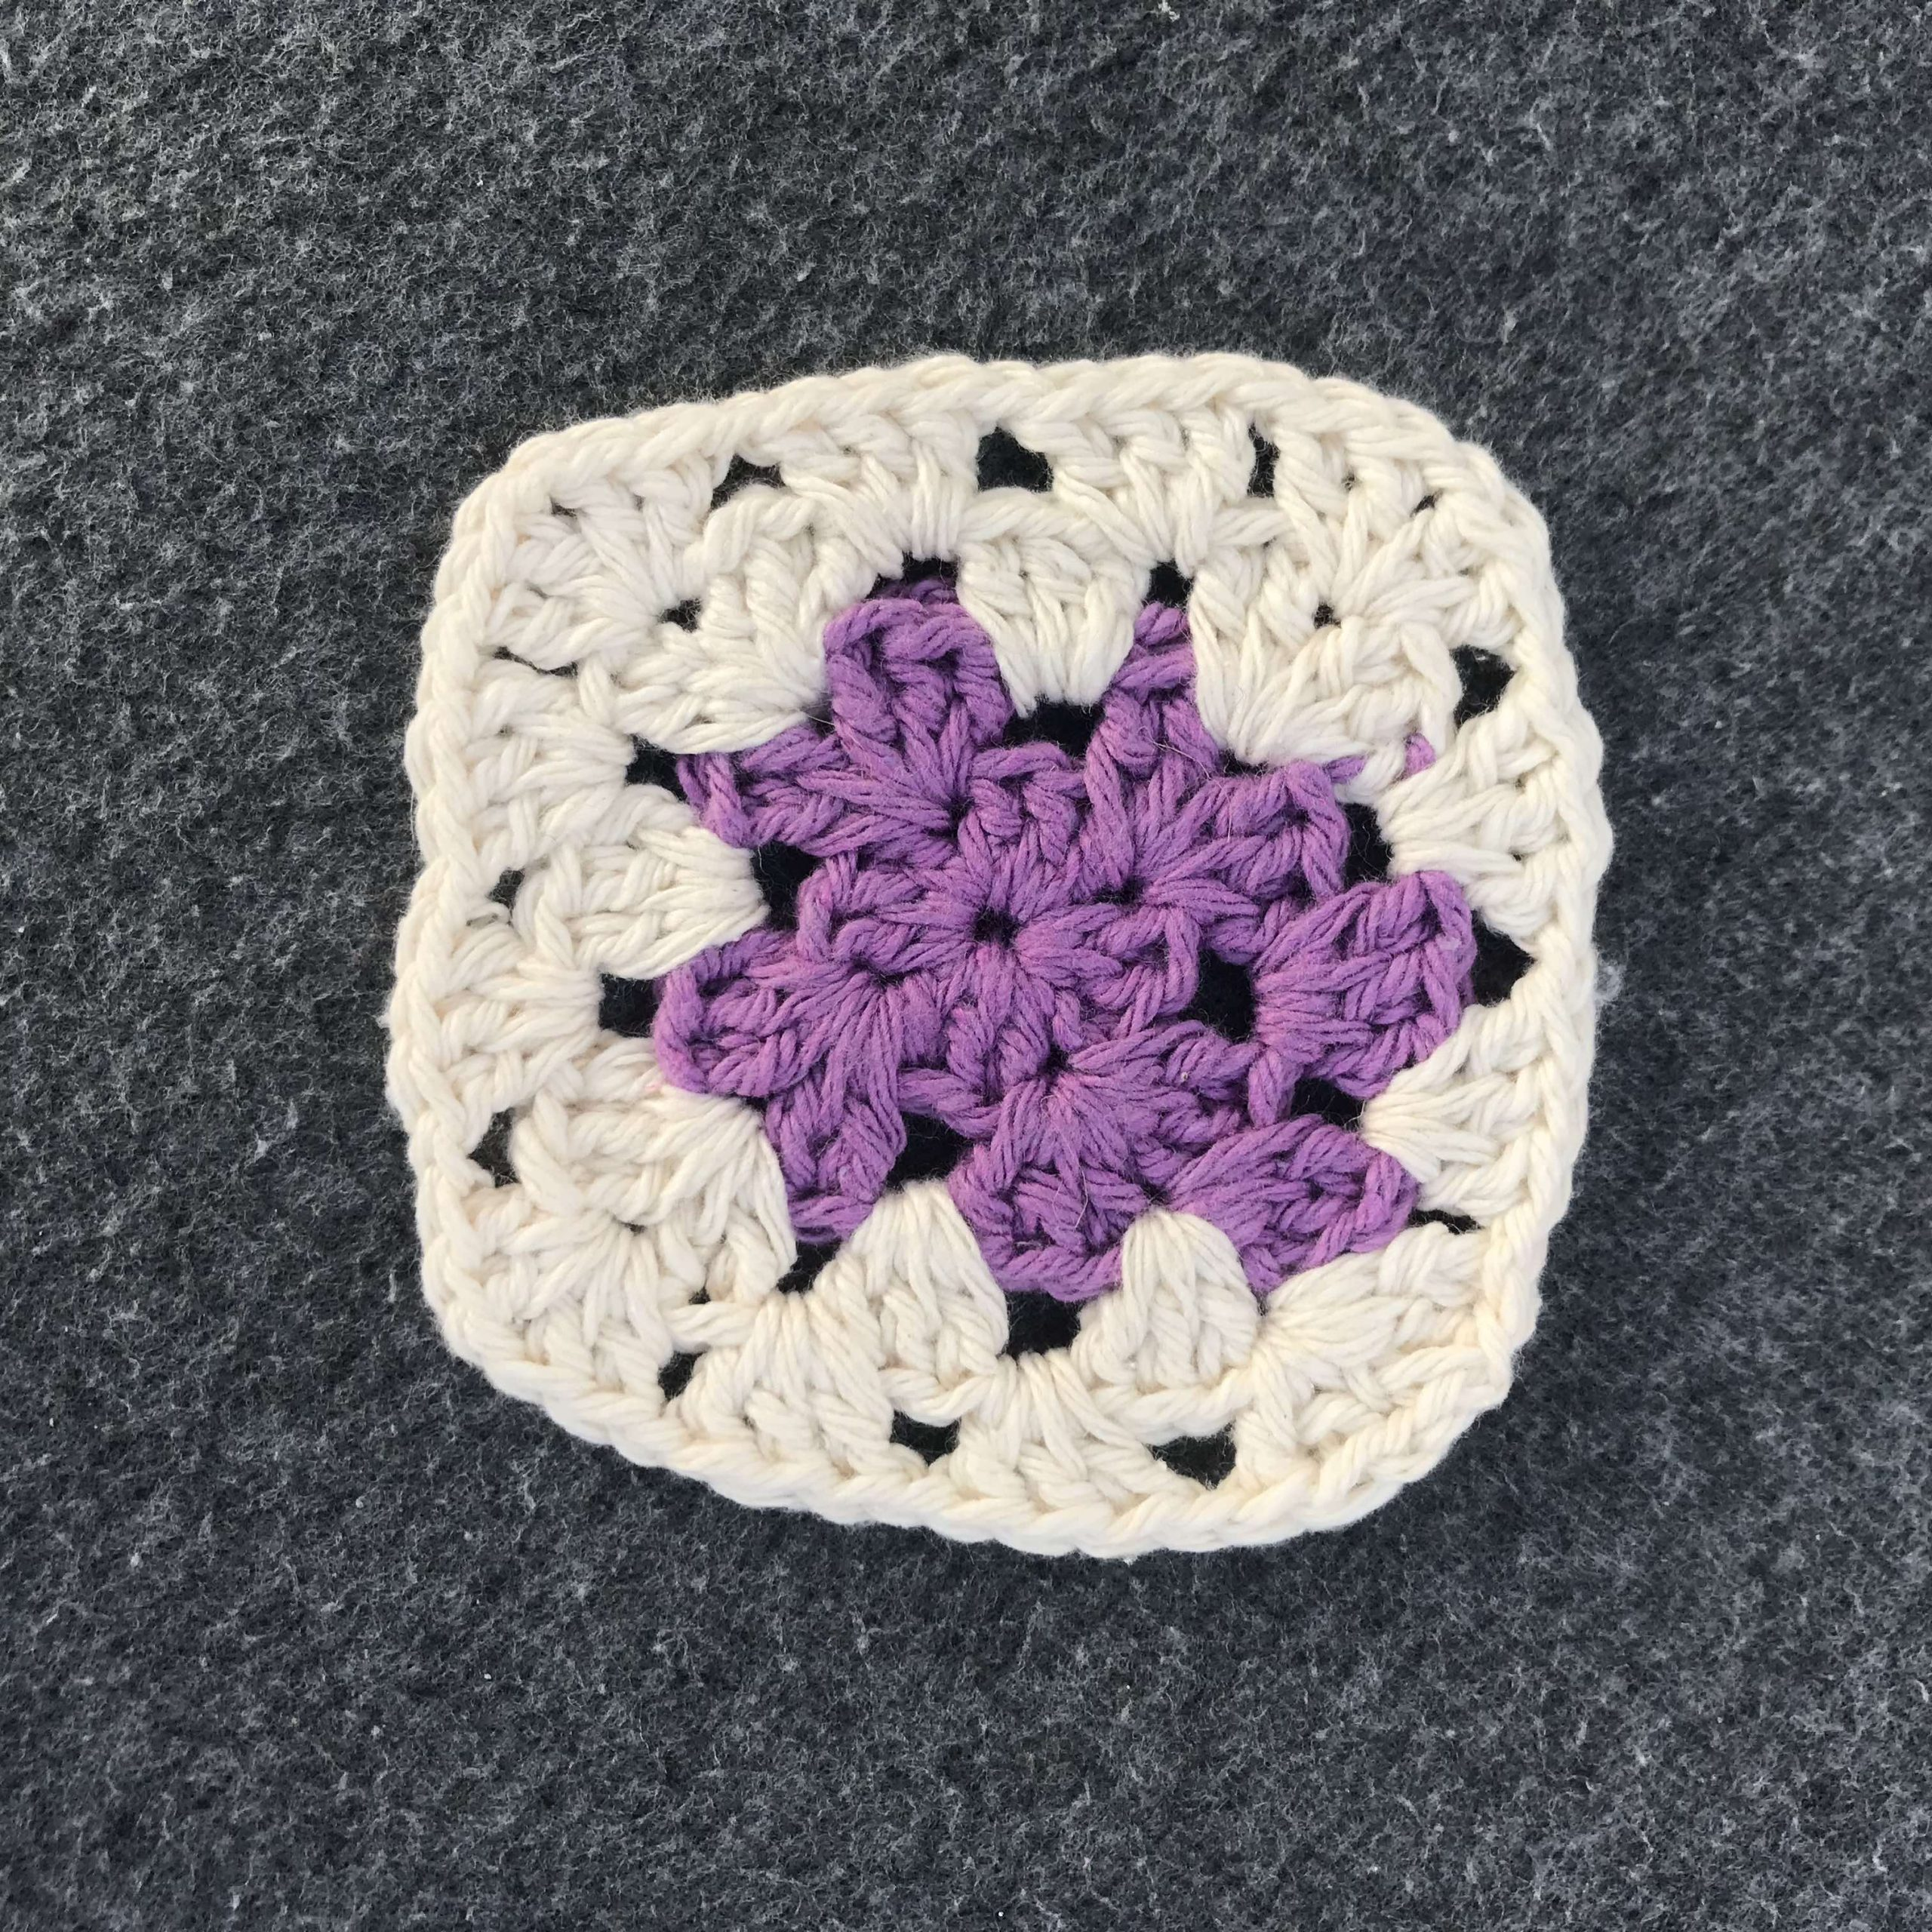 Crocheted Coasters in Mauve and Cream